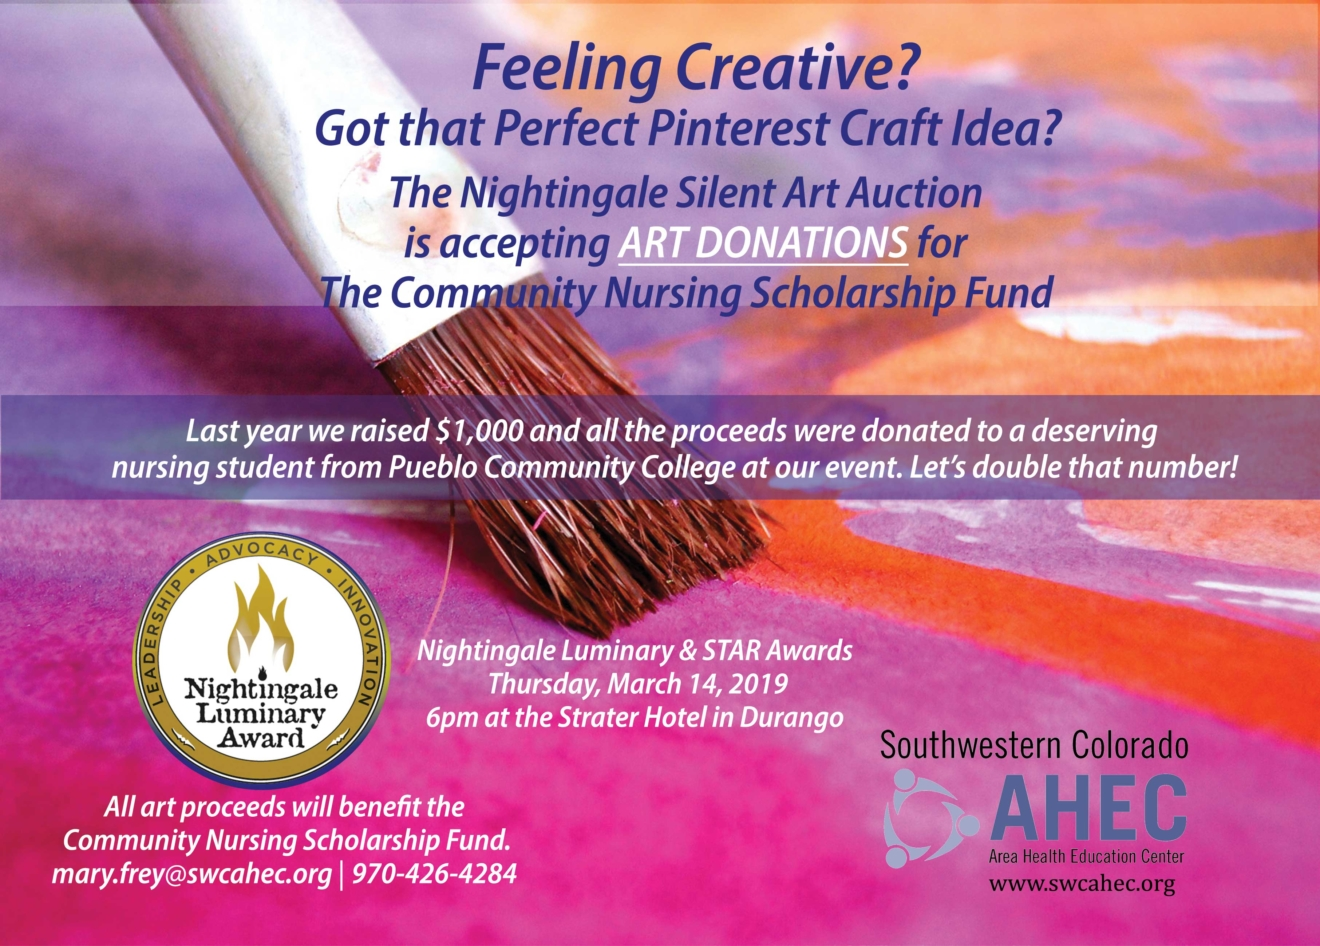 Art-Auction-flyer-Donate-Art-with event date